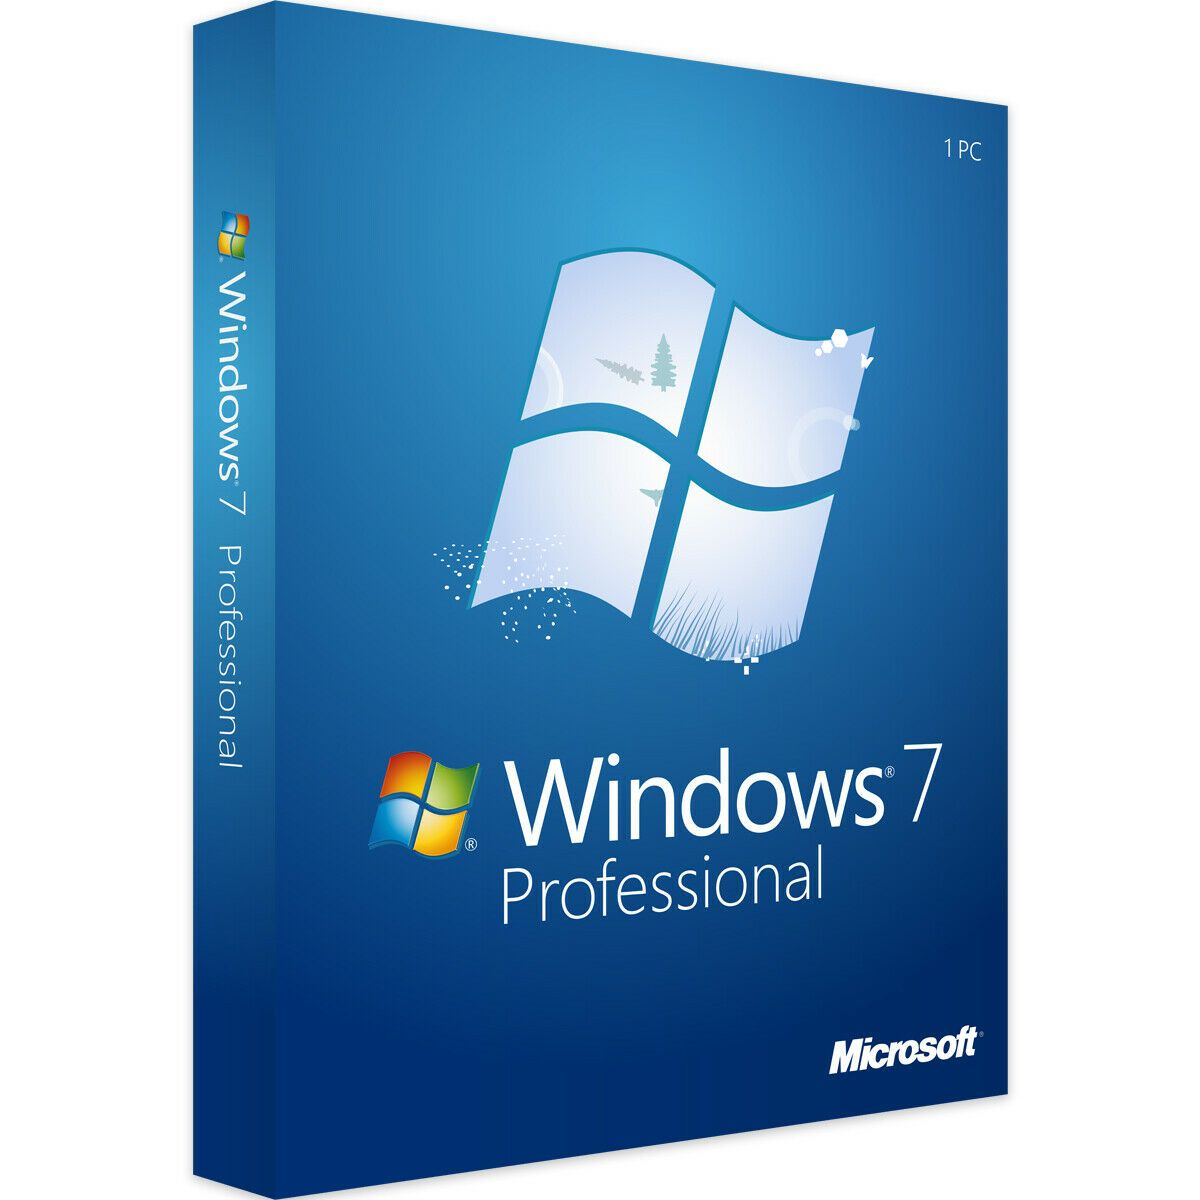 Microsoft Windows 7 Professional New Activation License Key Code For 1 Pc